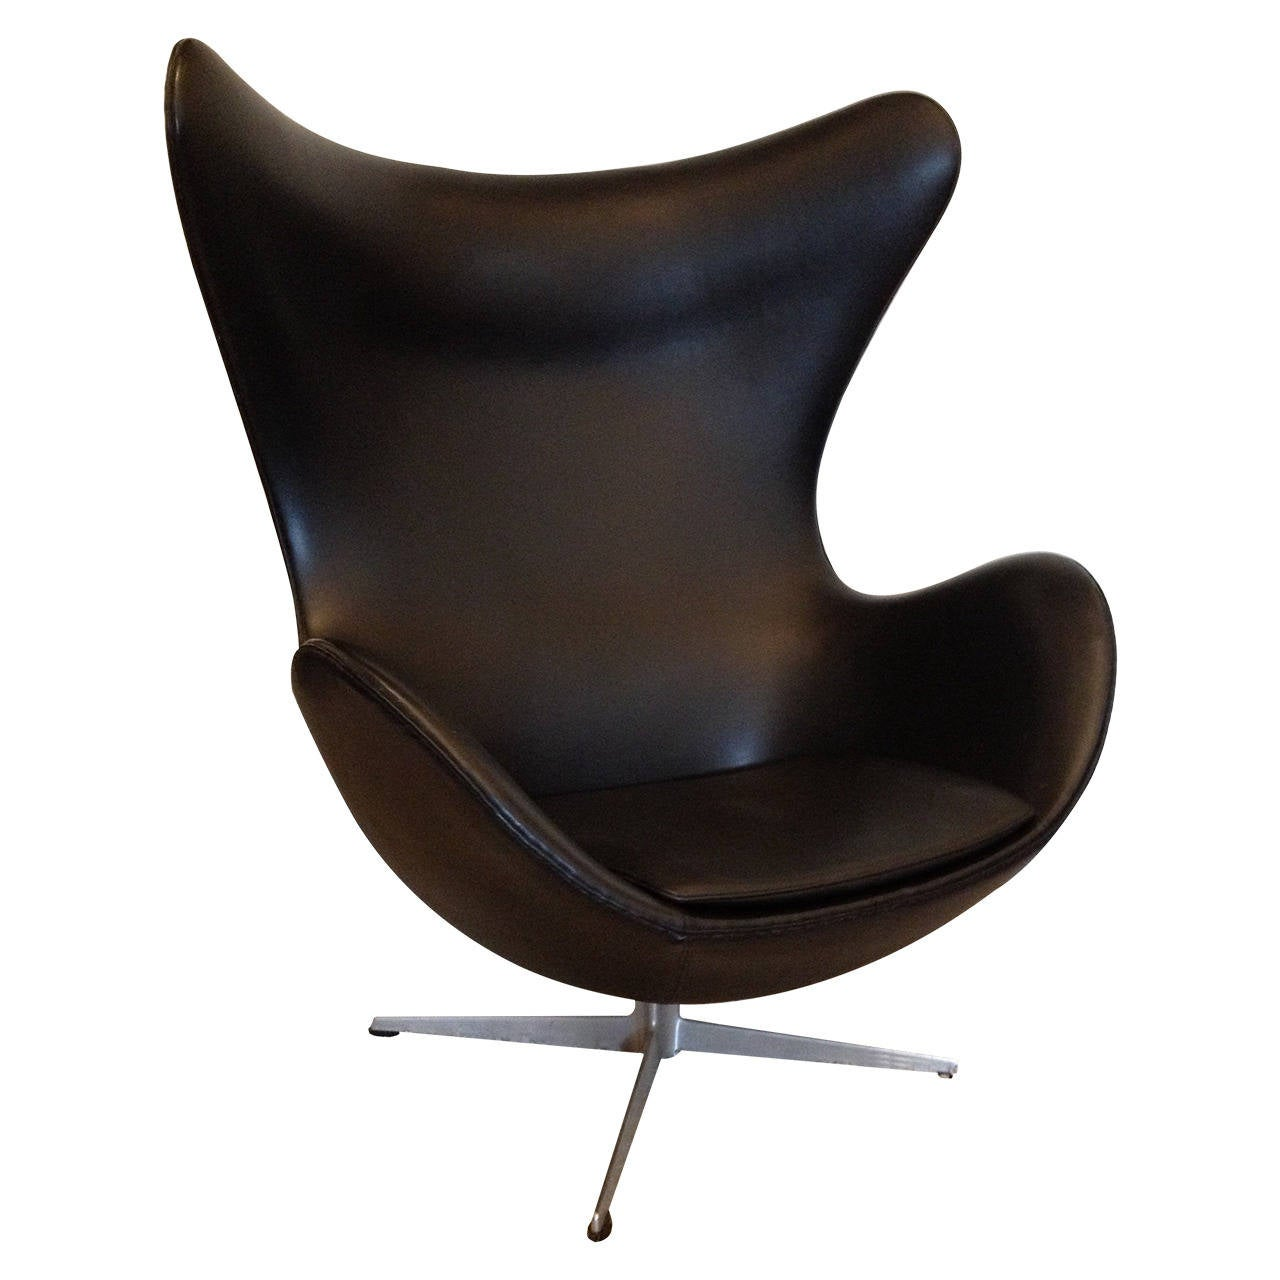 arne jacobsen vintage egg chair for fritz hansen at 1stdibs. Black Bedroom Furniture Sets. Home Design Ideas